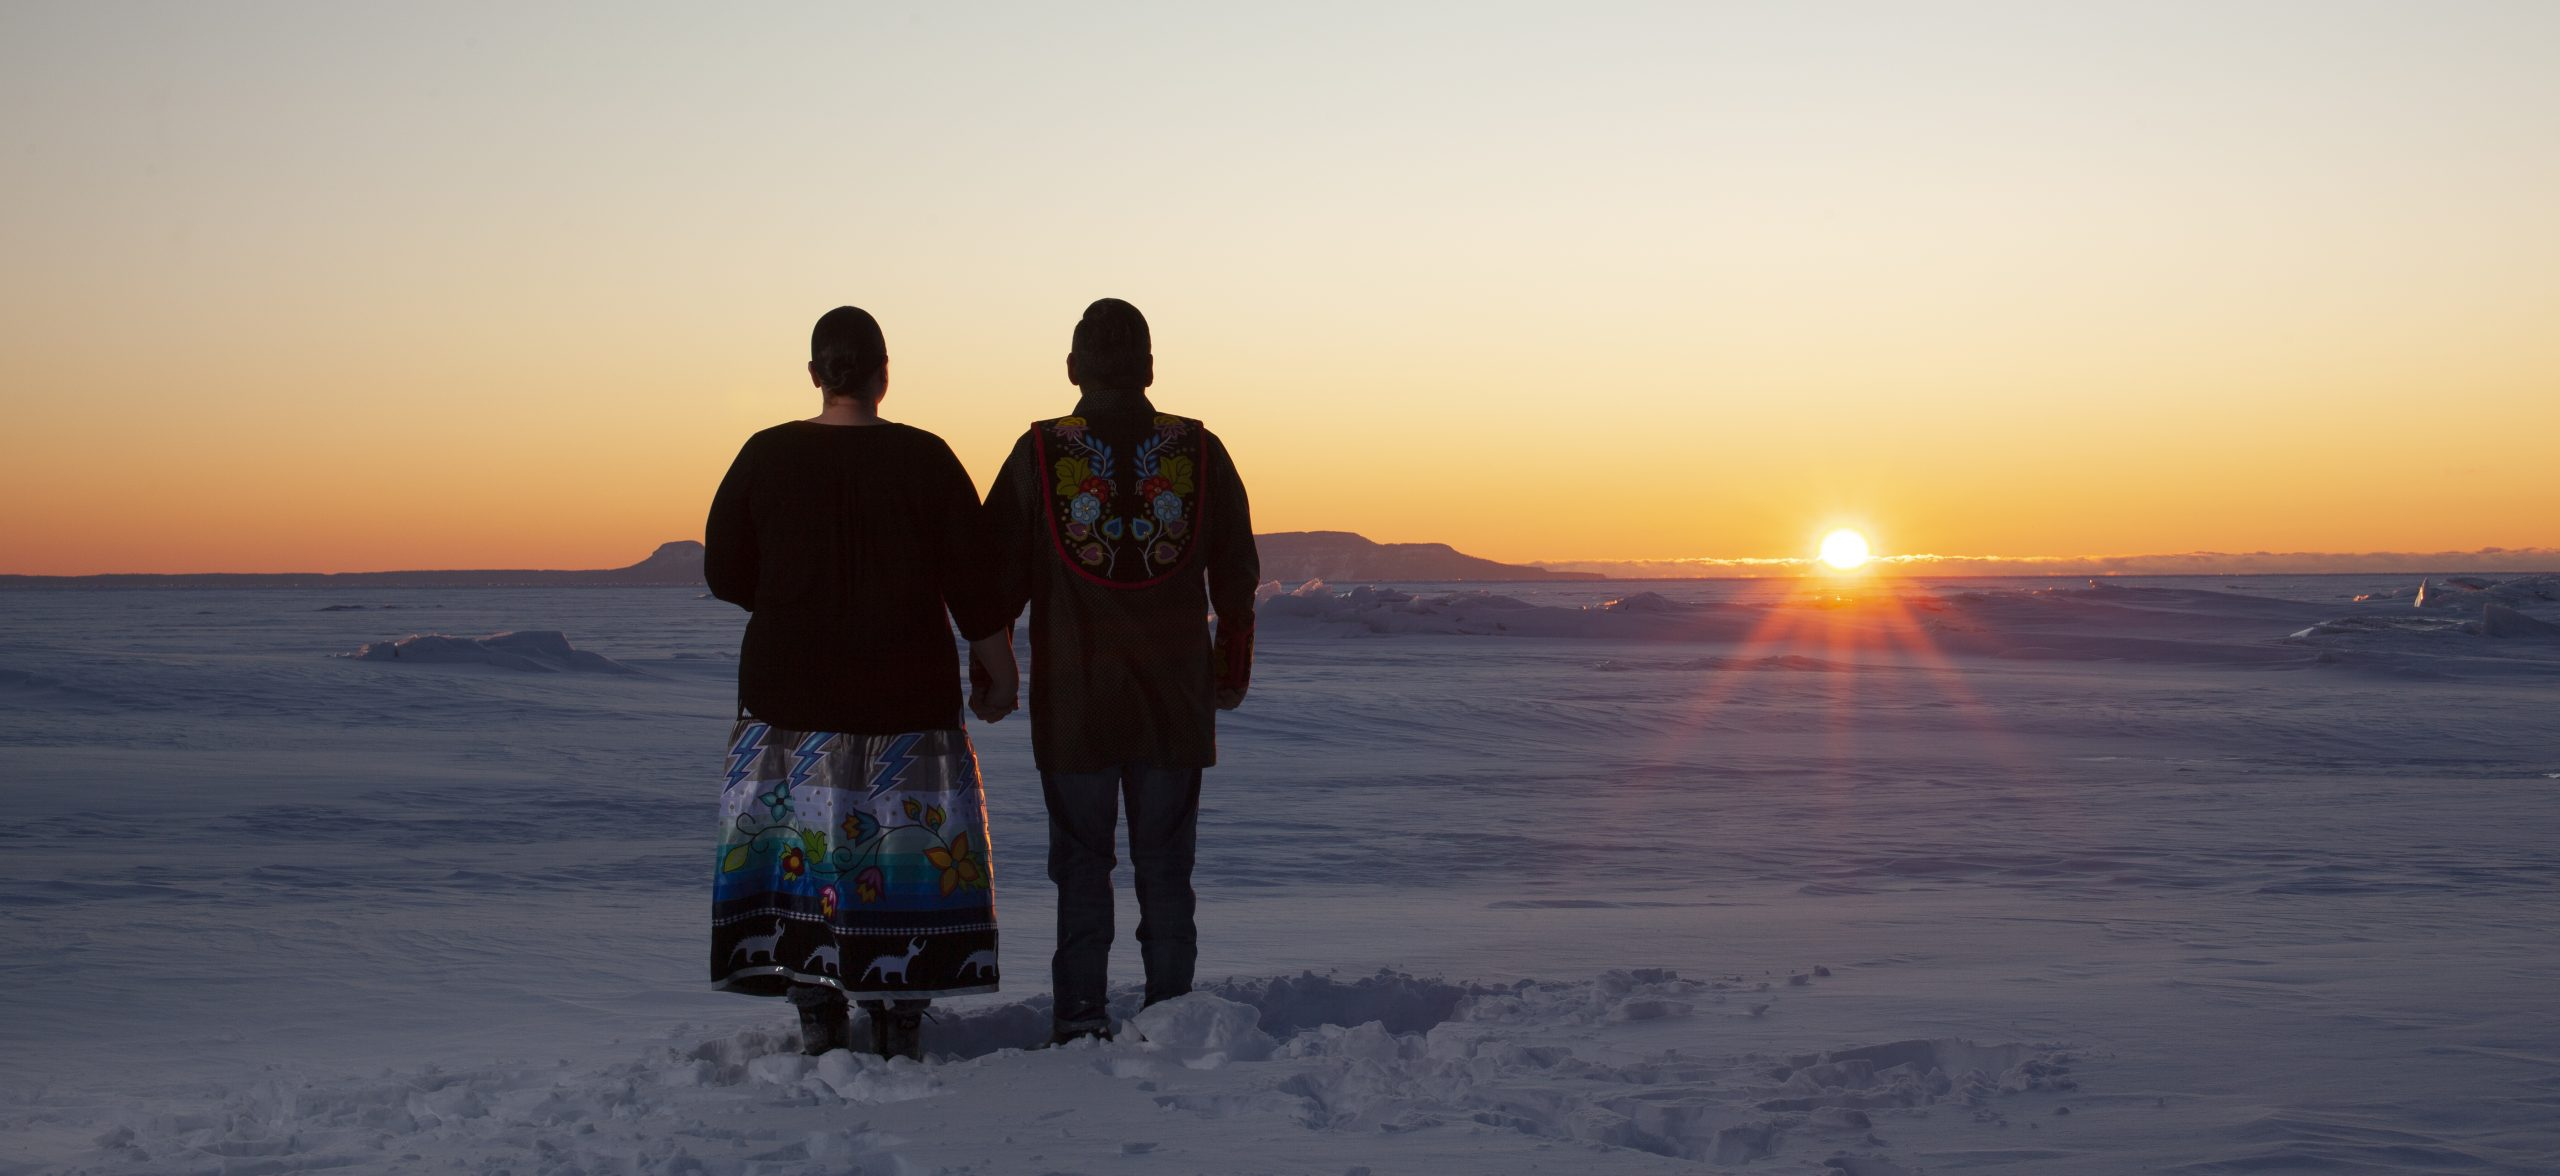 Ryan and Shannon Gustafson holding hands watching the sun rise over a winter landscape photograph